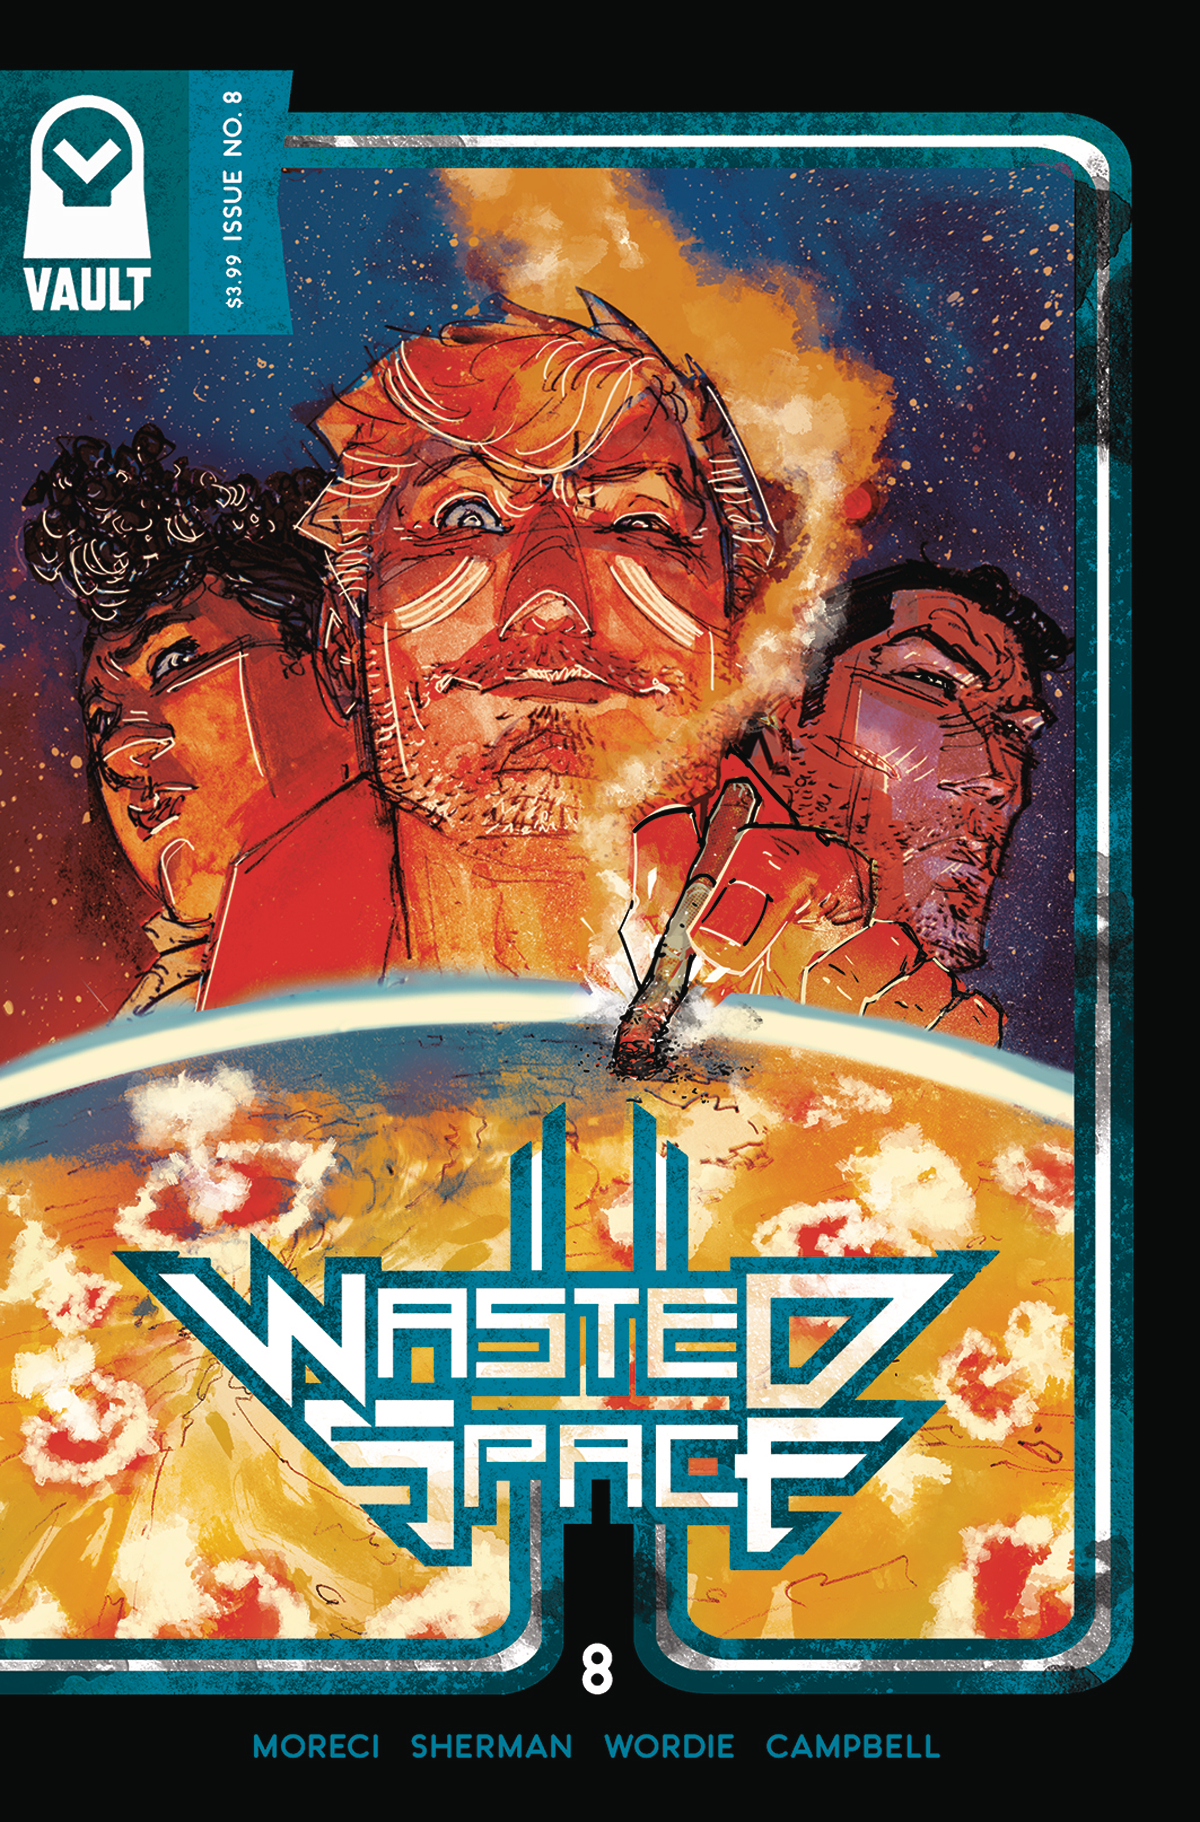 Wasted Space #8  is out 3/27/2019.